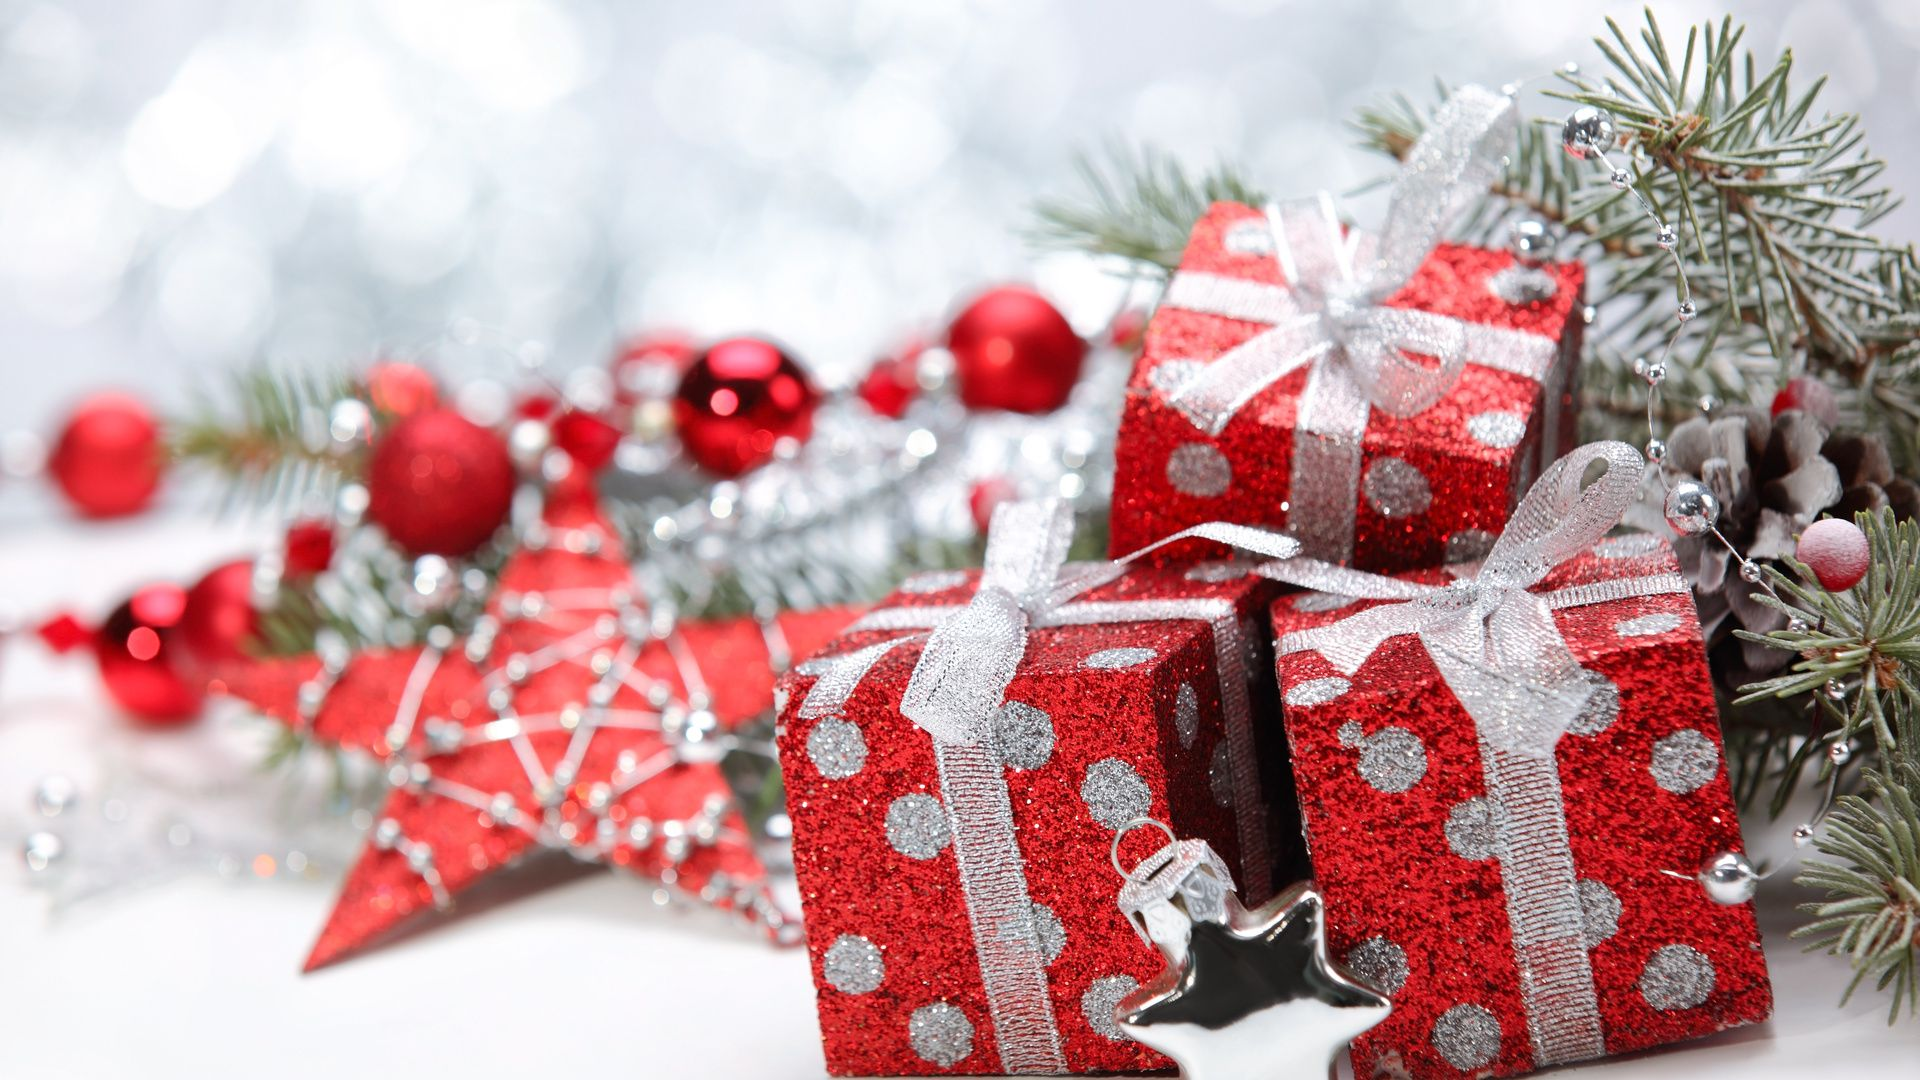 New Year Gifts wallpaper image hd